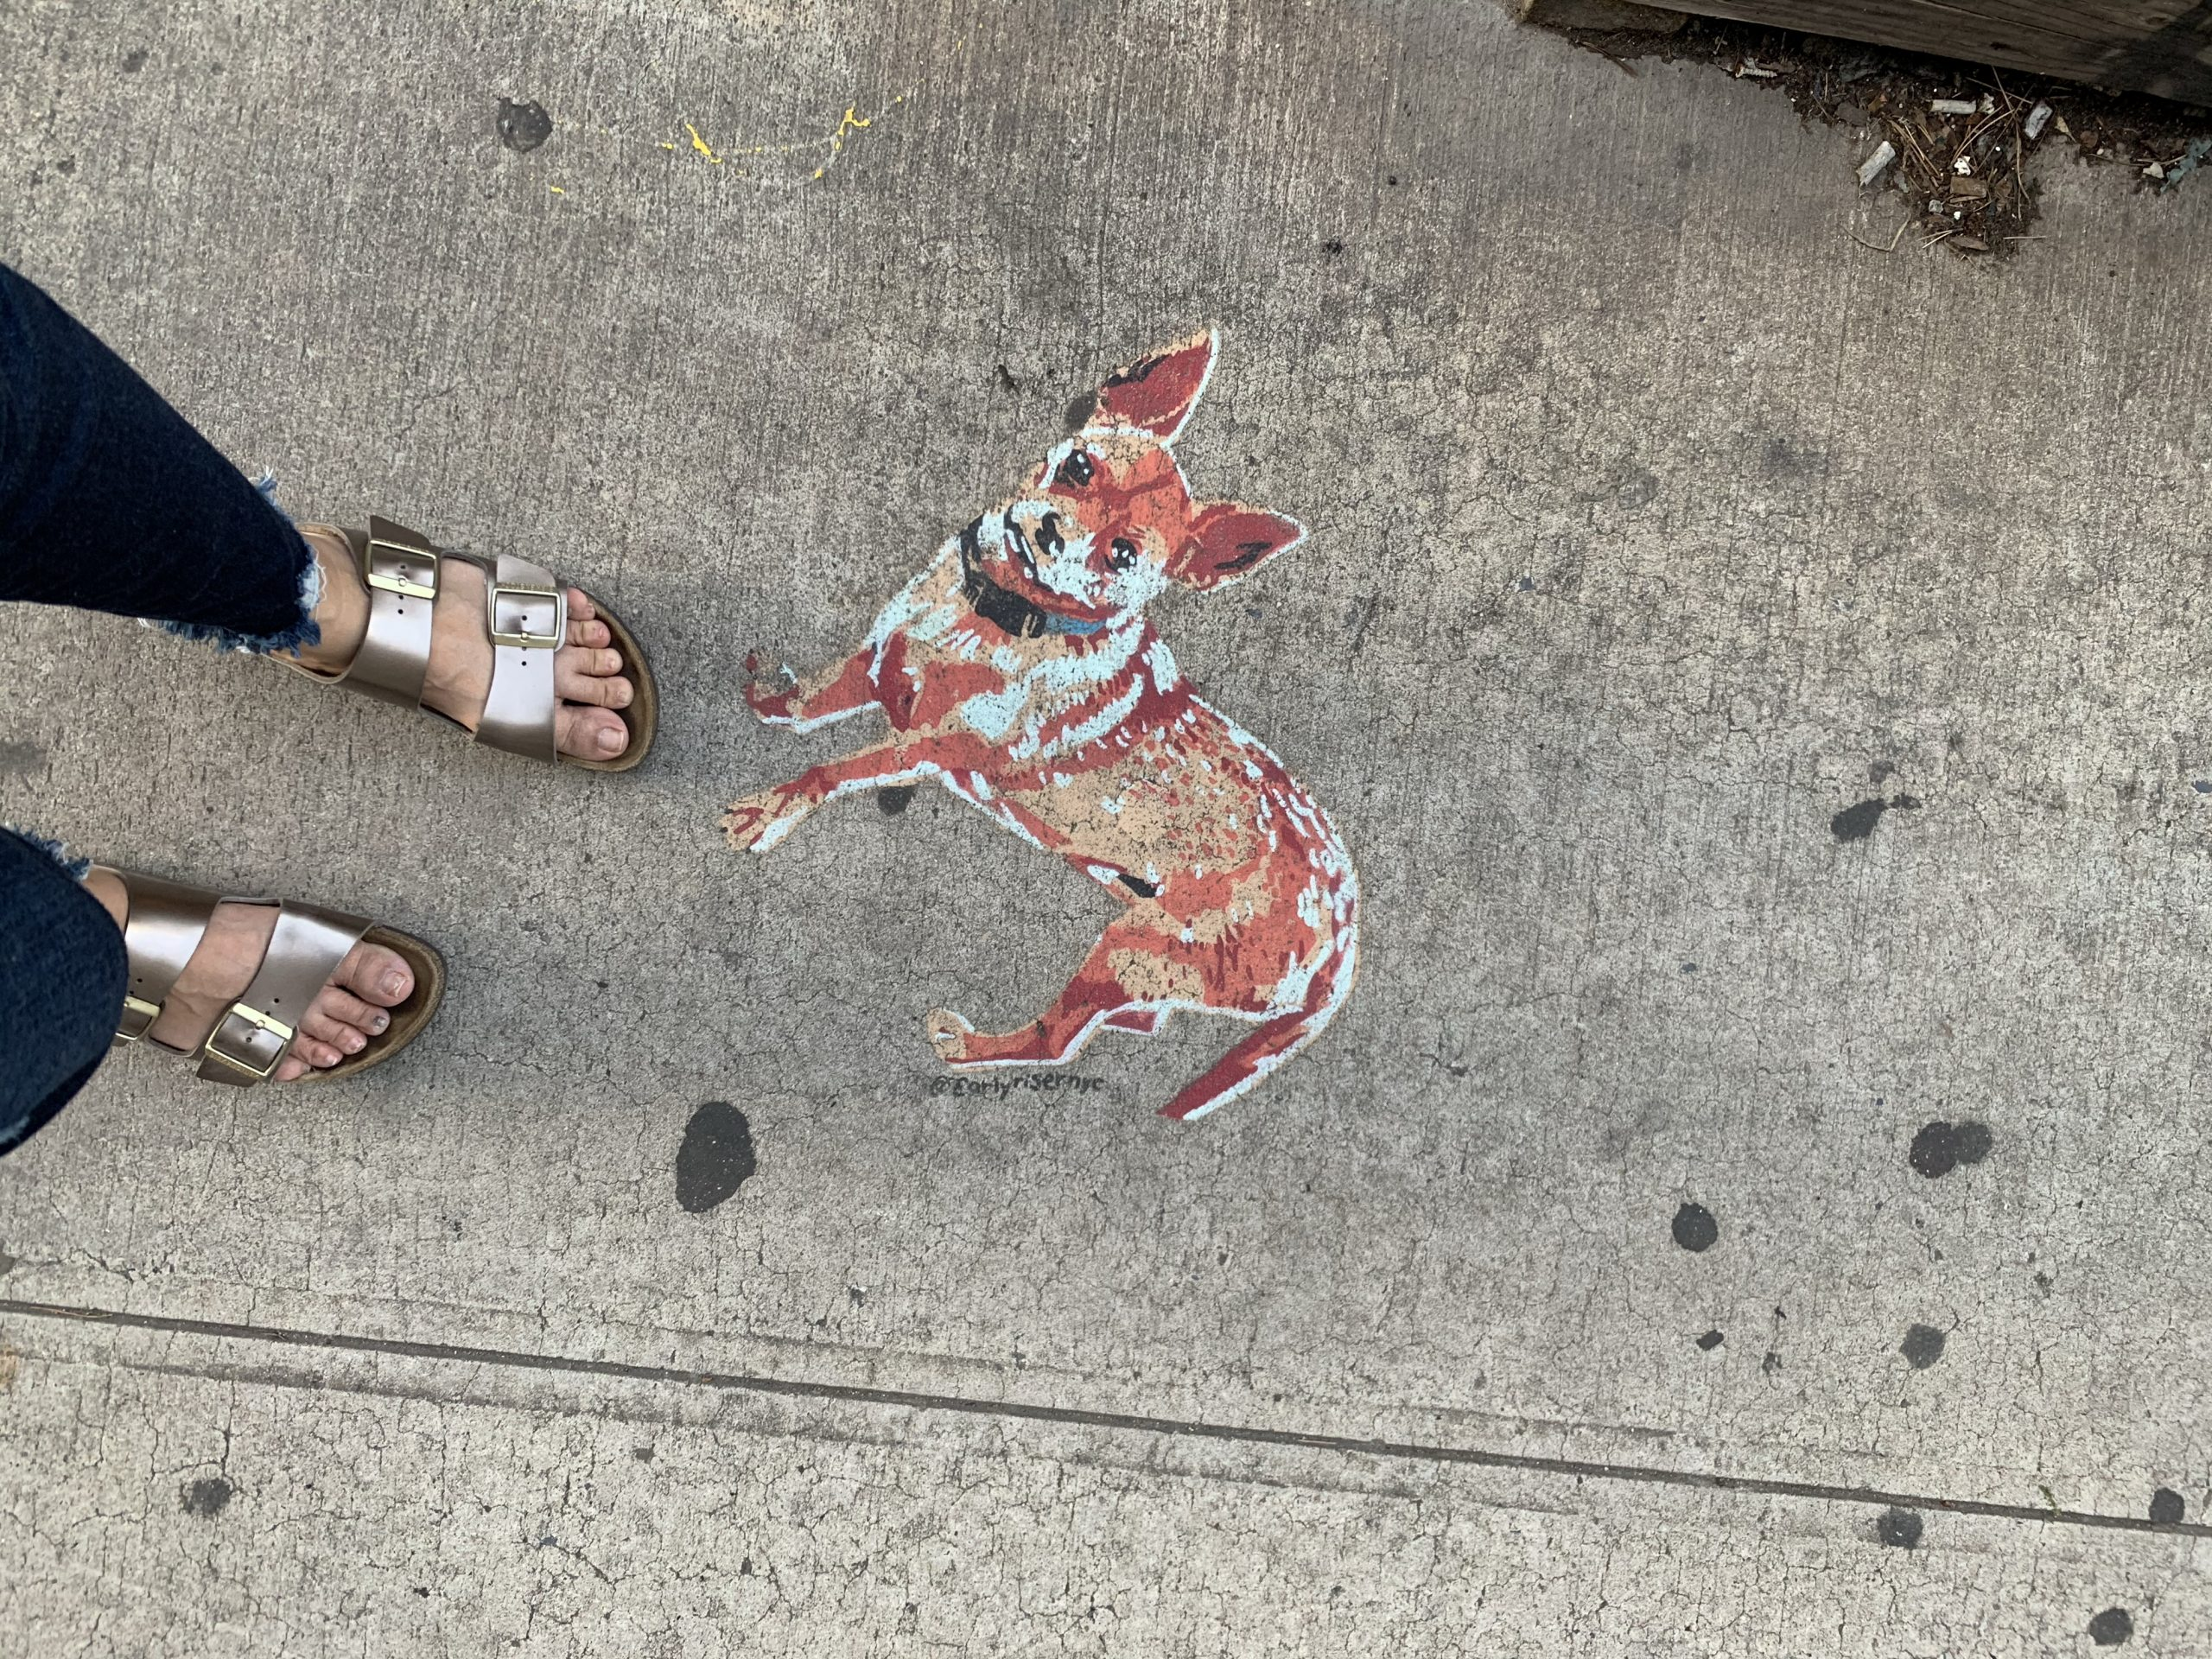 Spray painted fox on the sidewalk